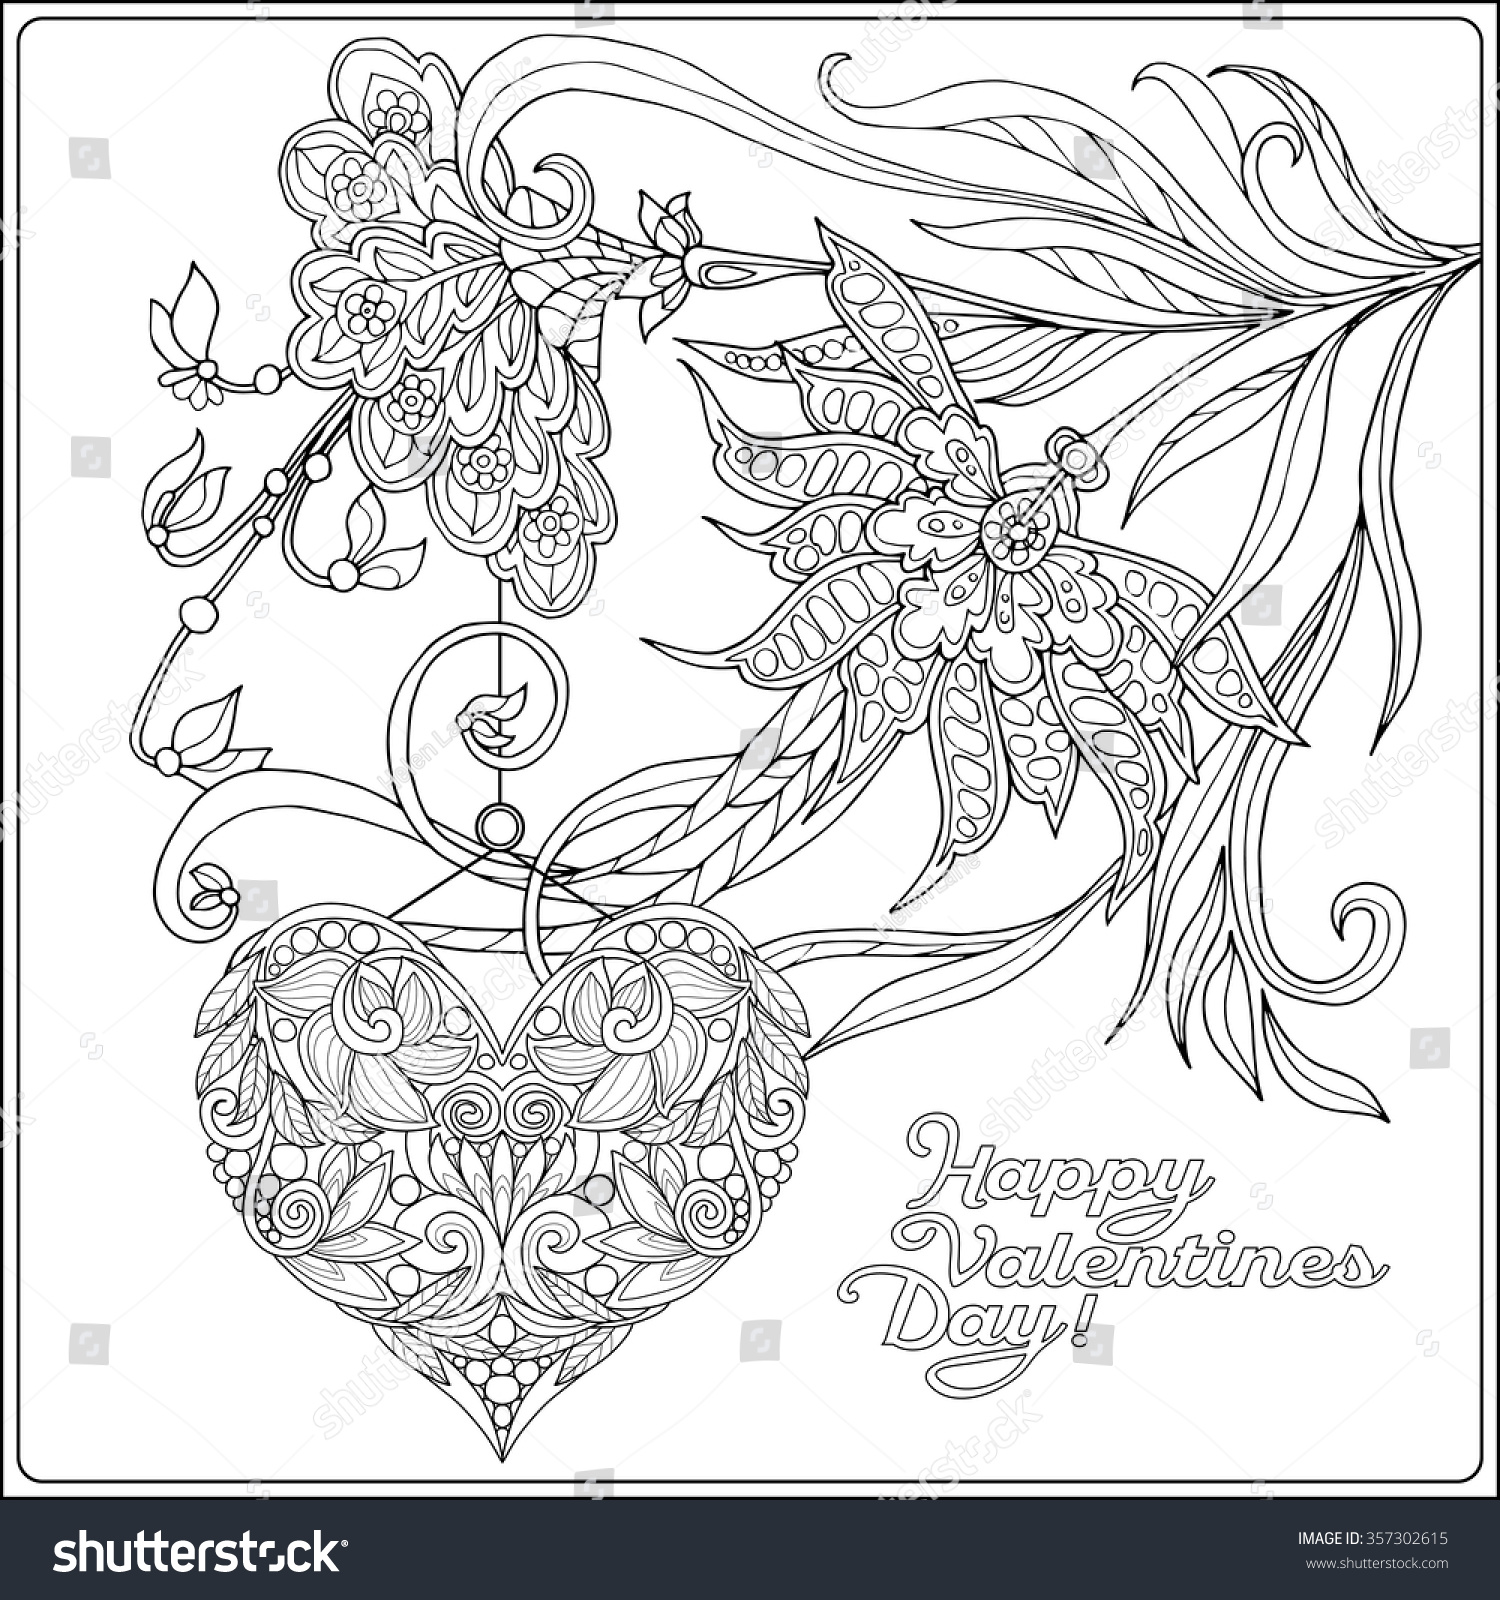 Valentines day mandala coloring pages - Stock Vector Happy Valentine Day Card With Decorative